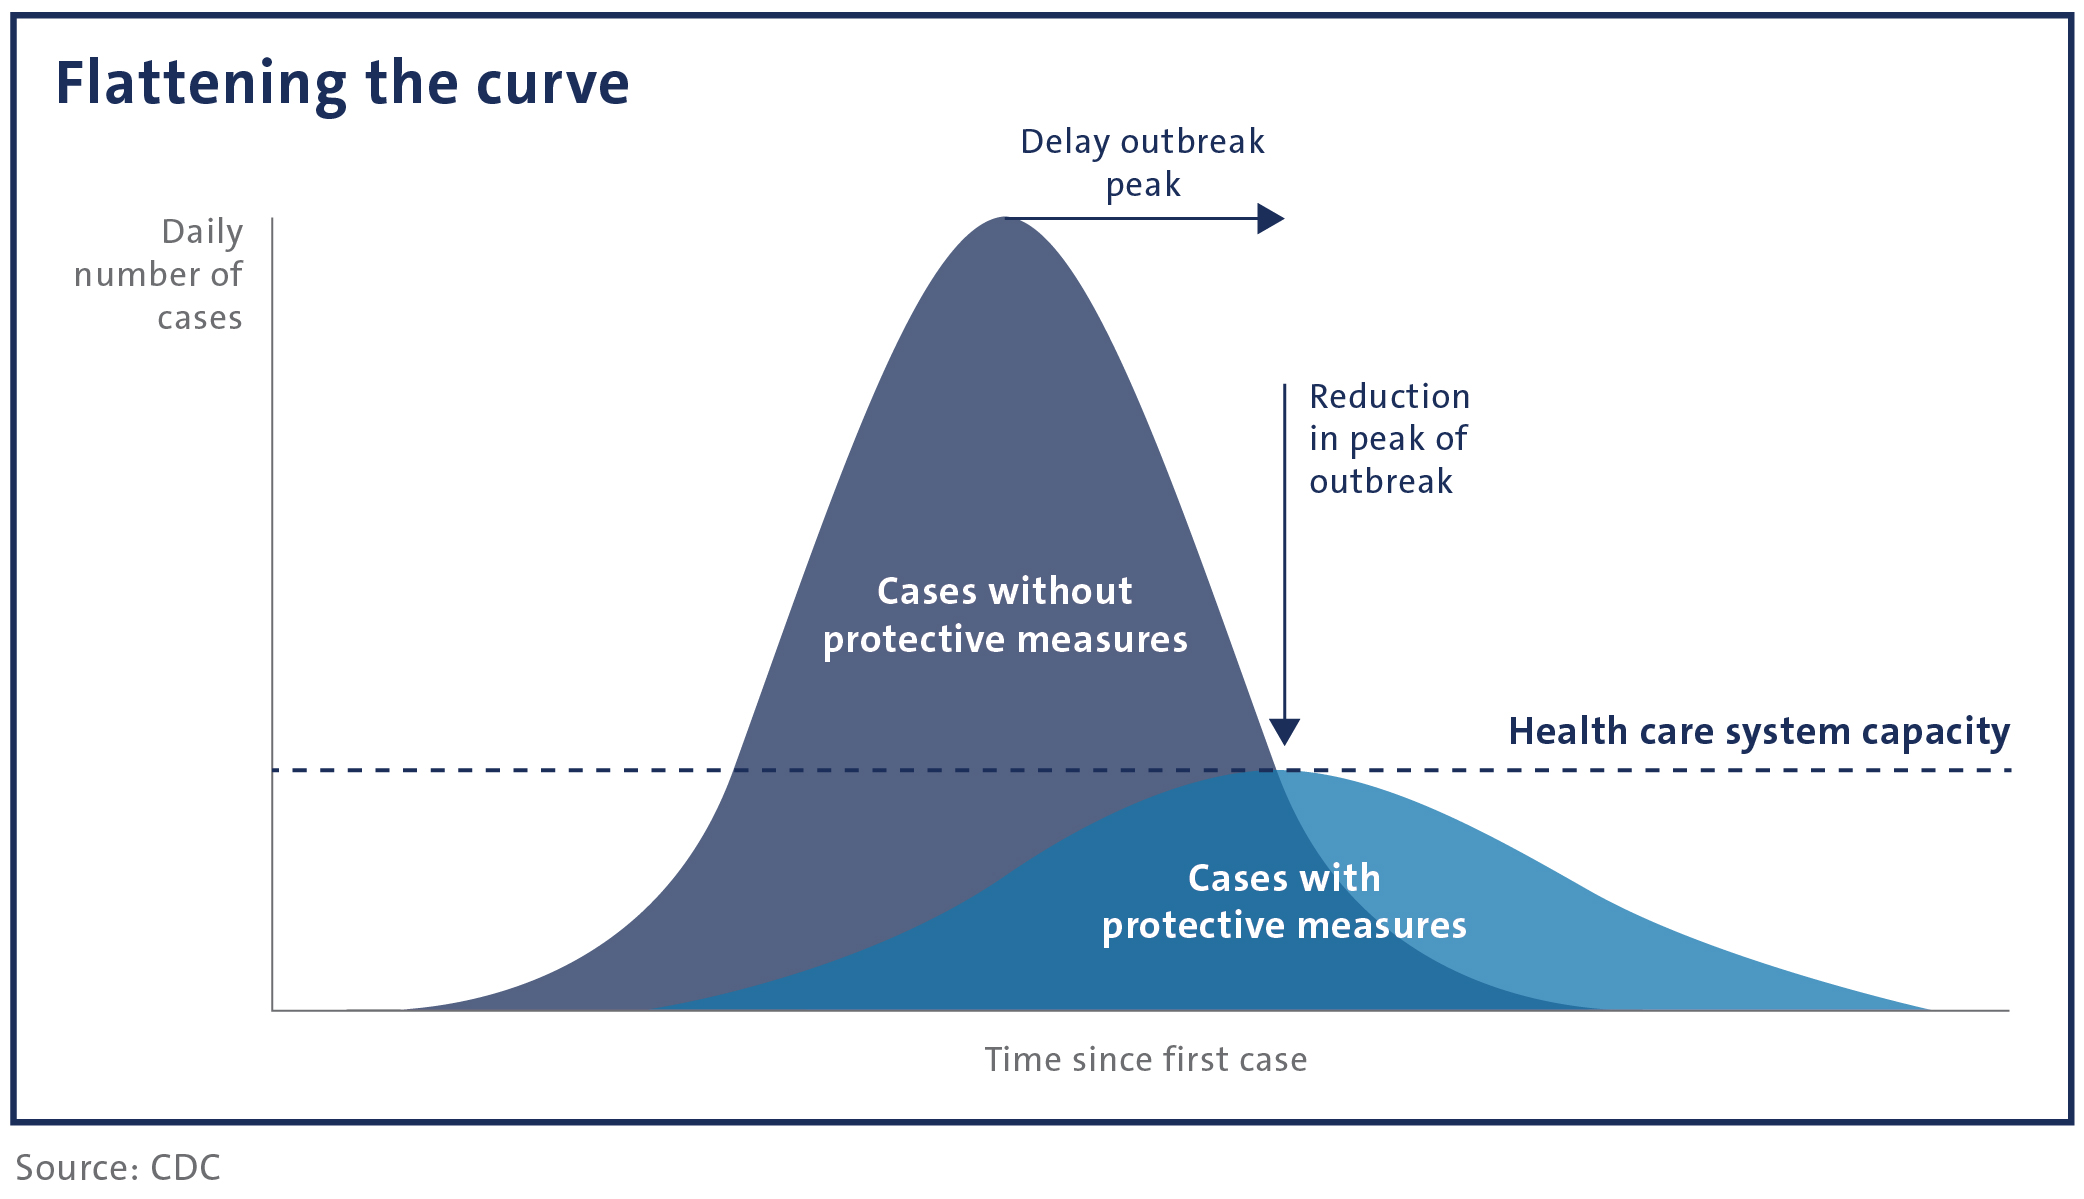 Graph explaining how to flatten the curve during COVID-19 pandemic